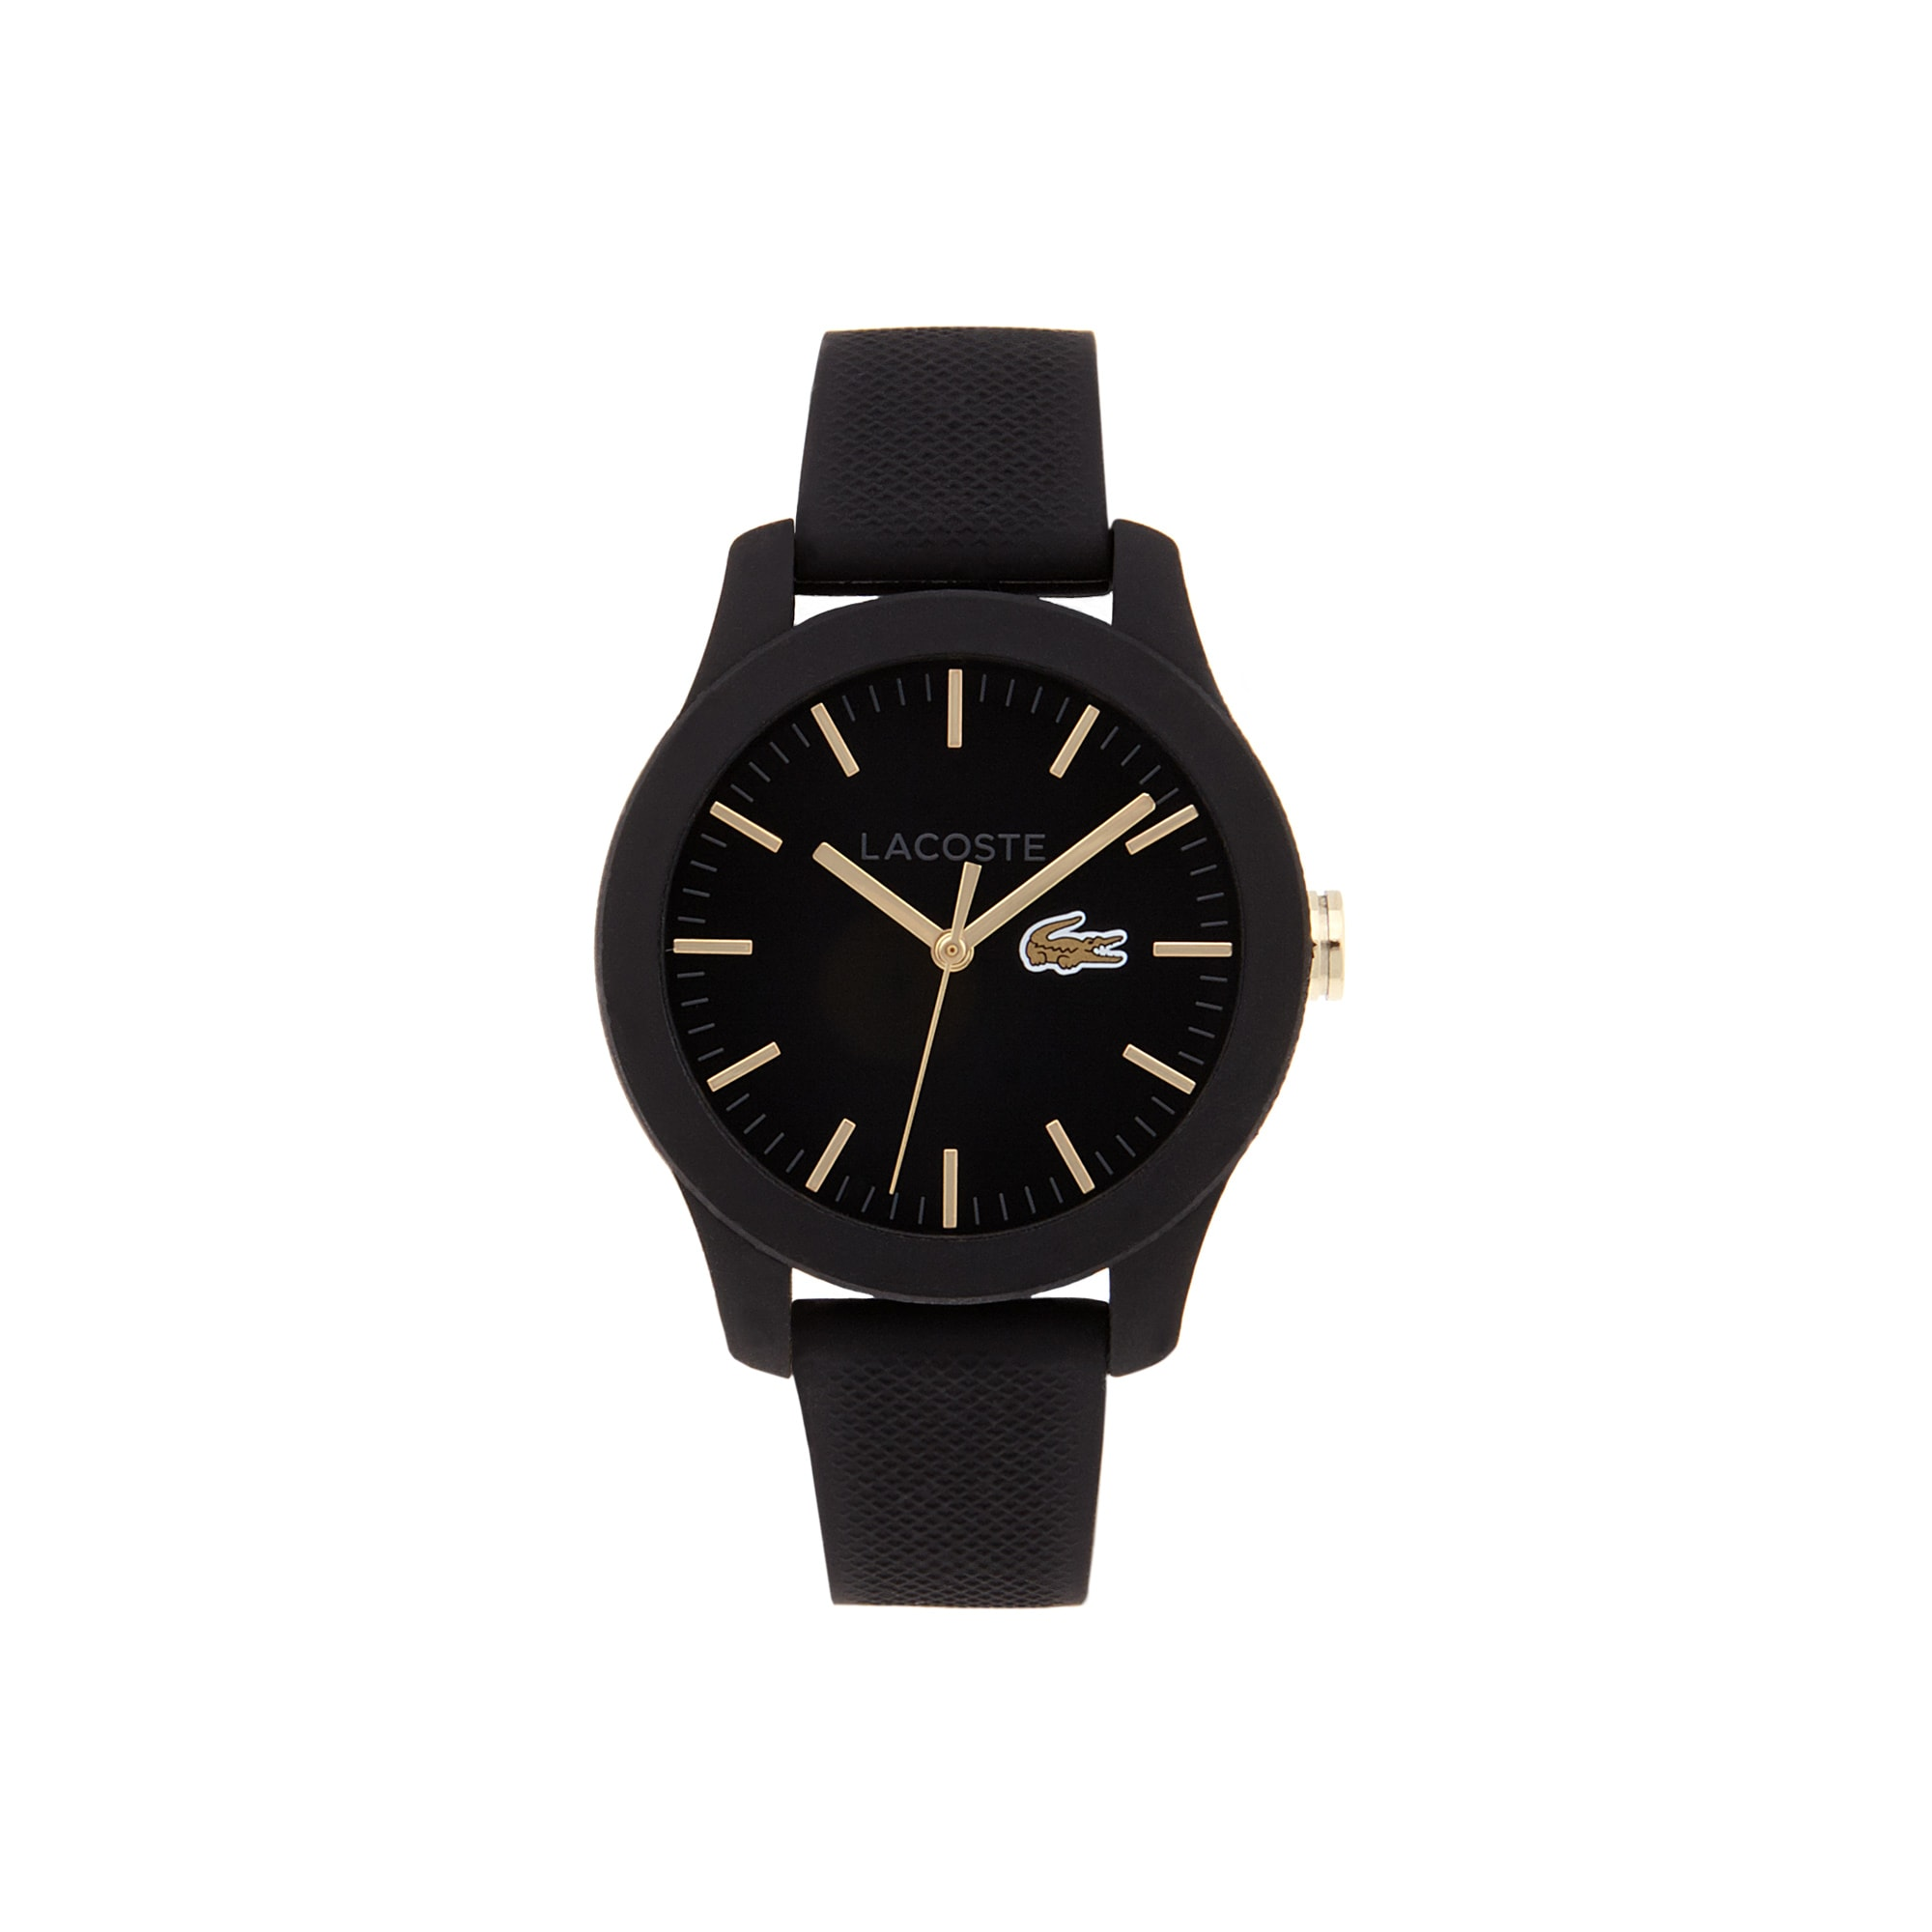 Unisex Lacoste.12.12 Black Watch